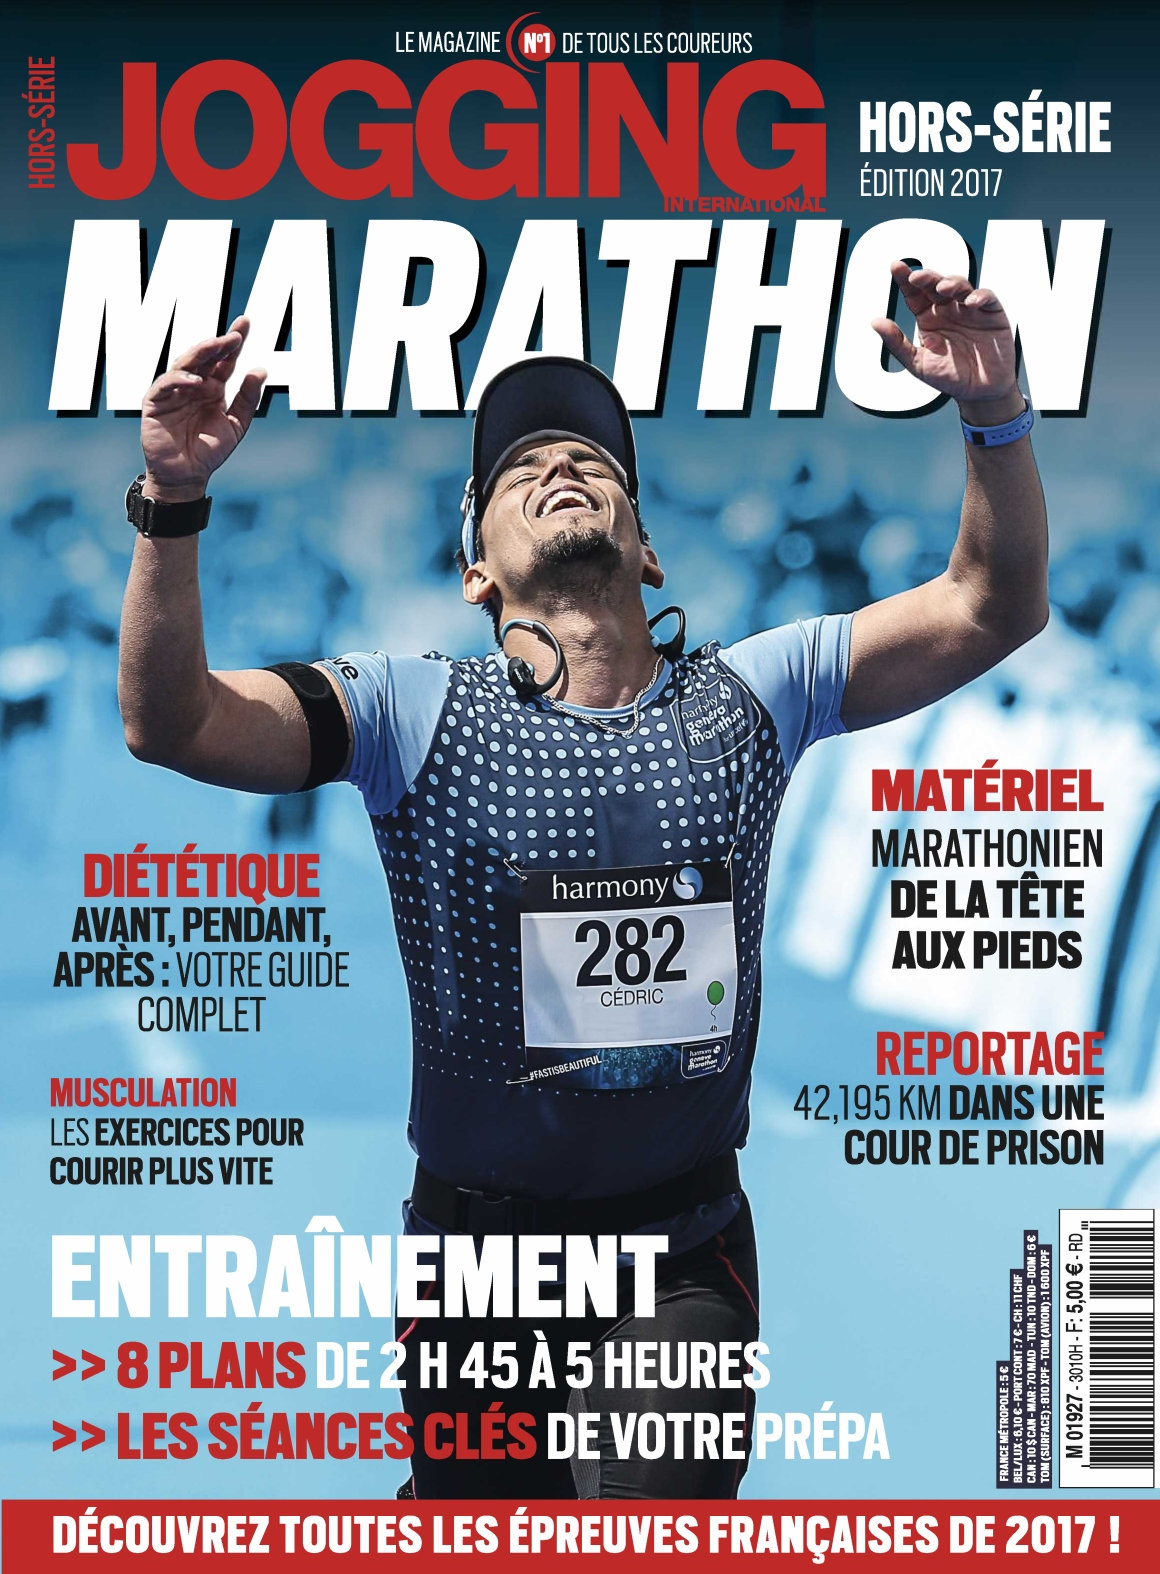 Jogging International Hors-Série 3010 - Marathon 2017